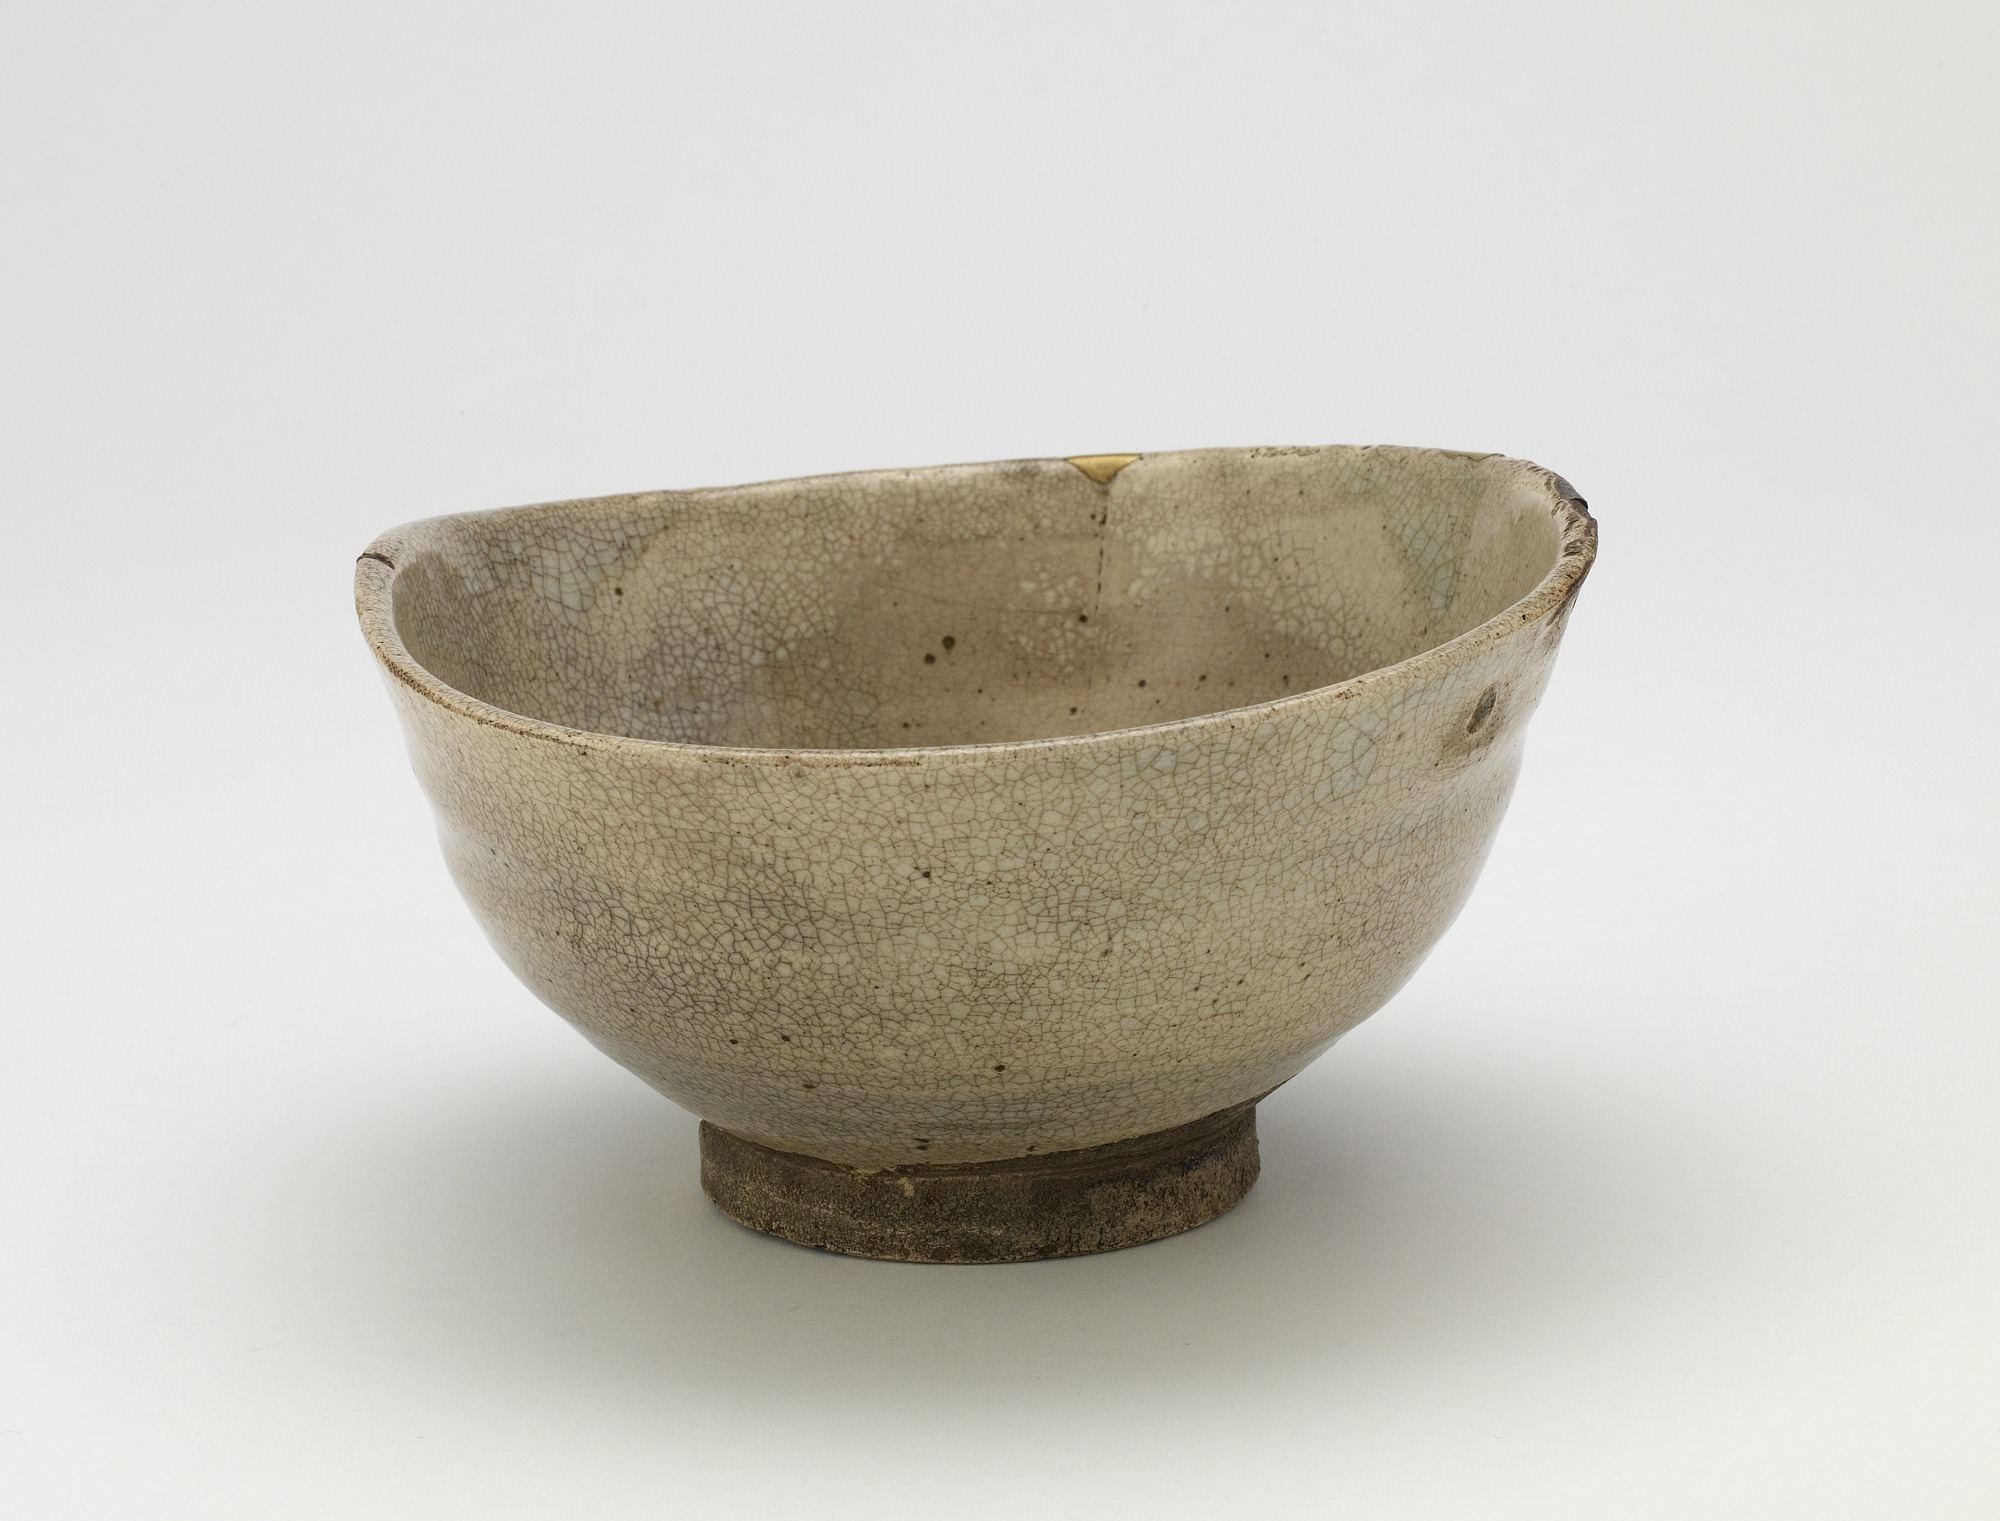 3/4 profile: Tea bowl